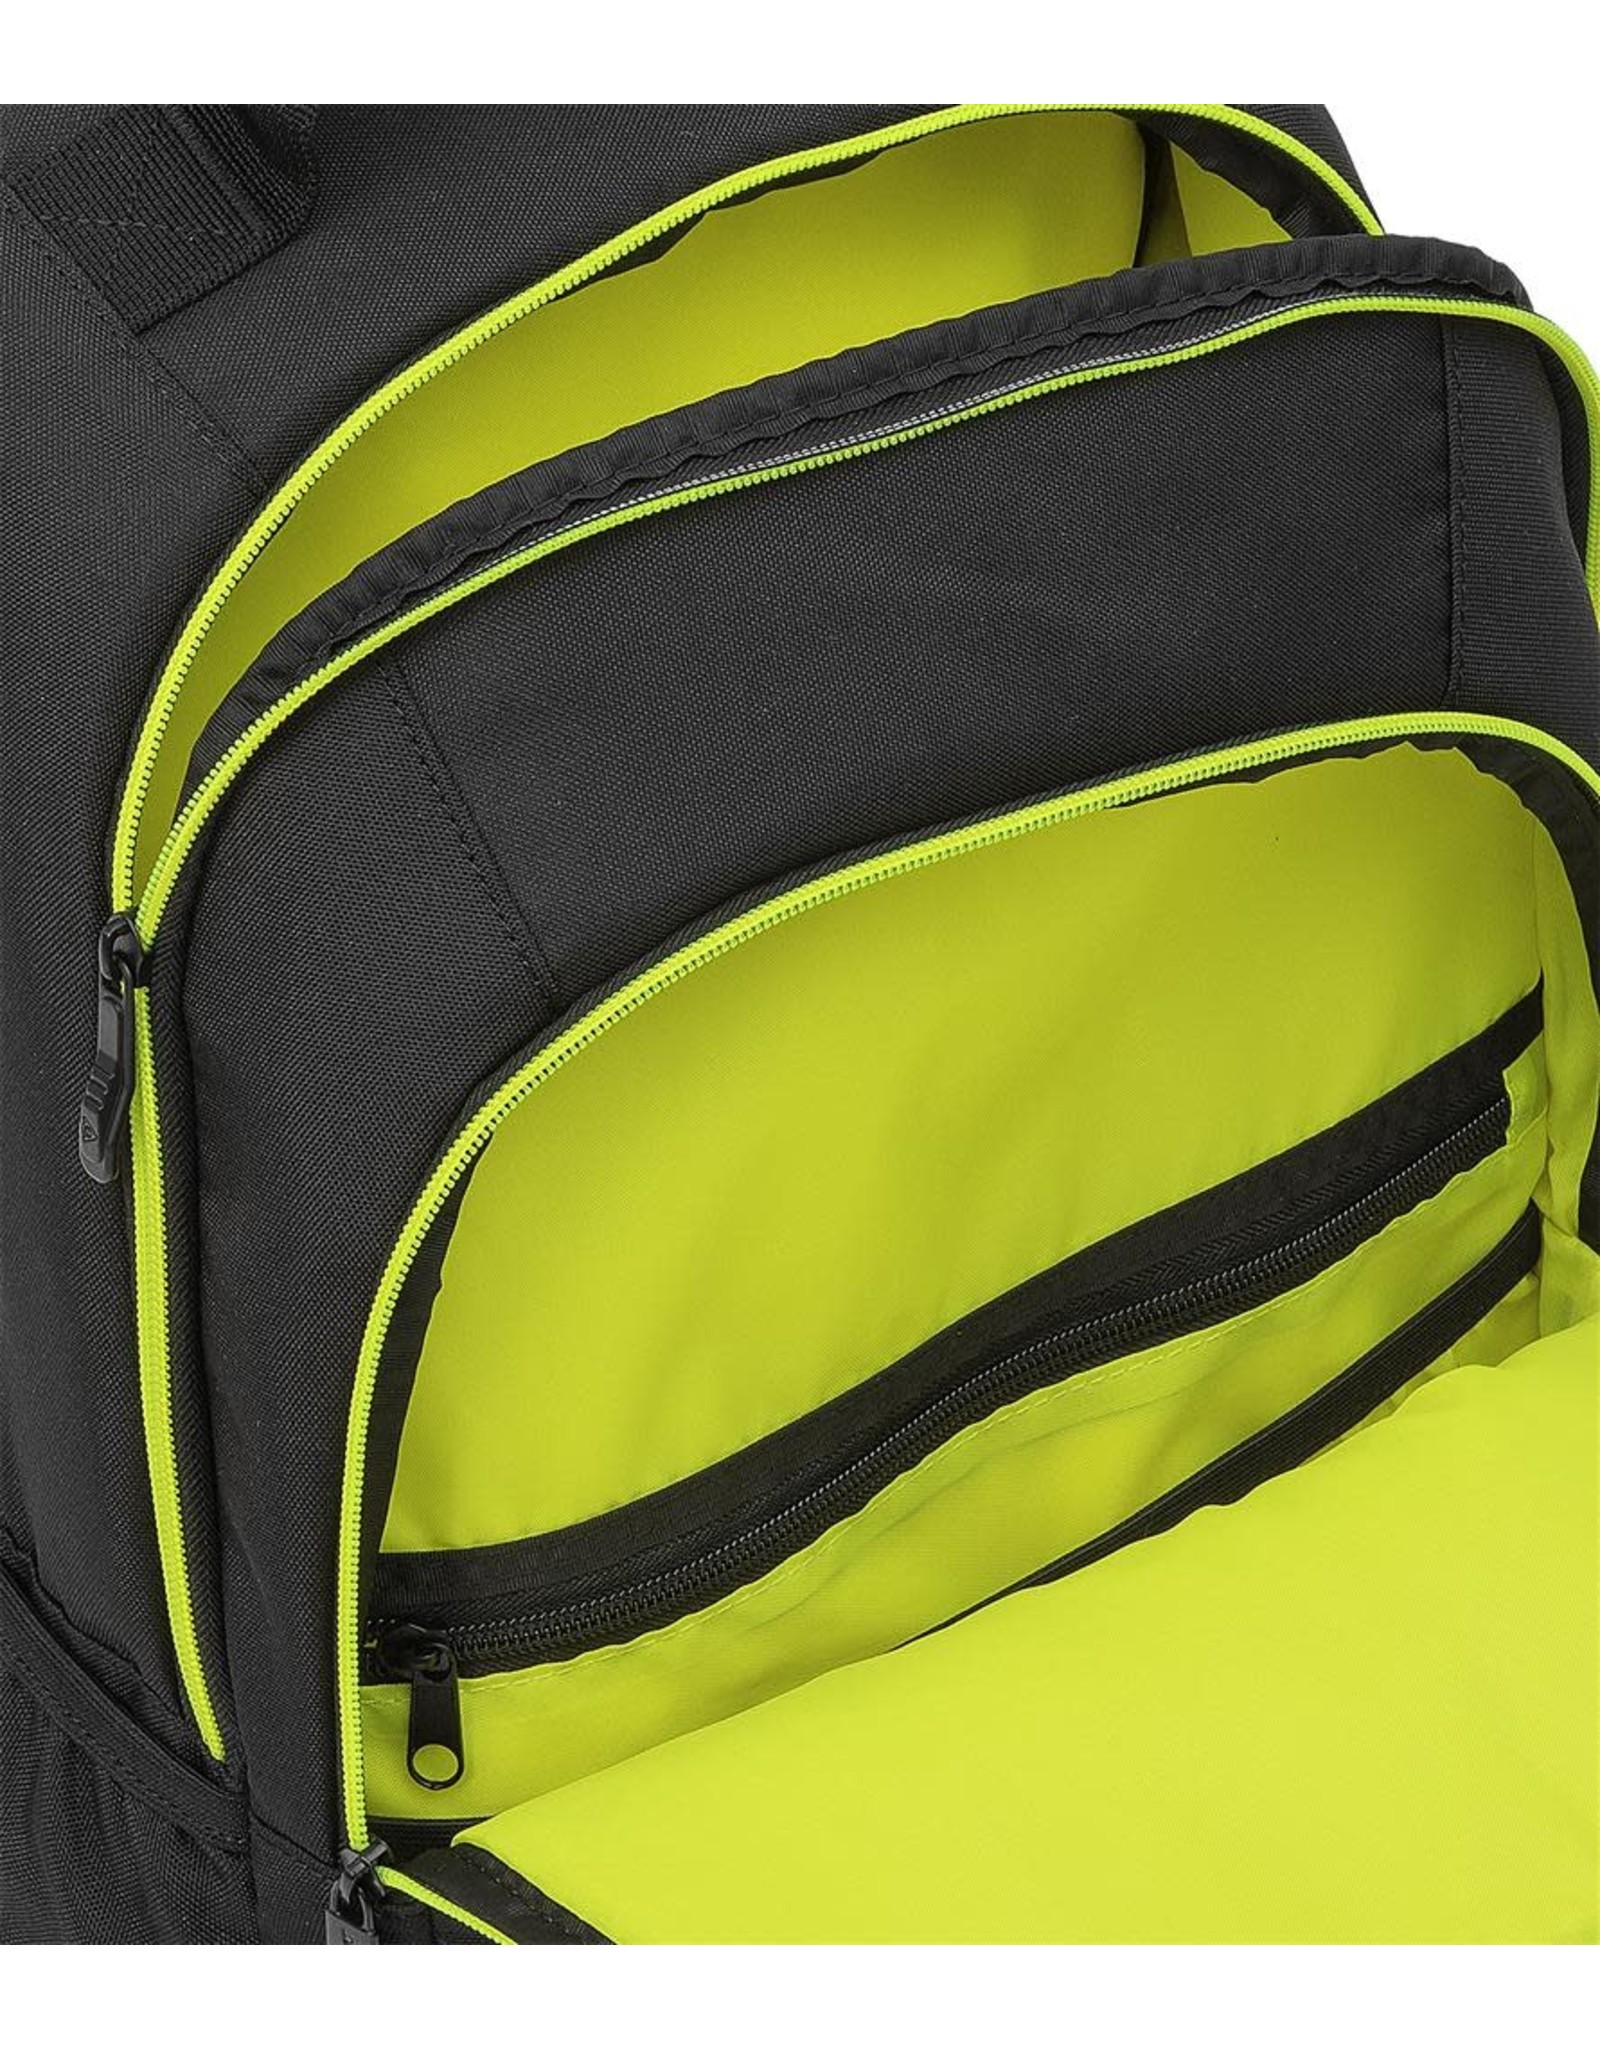 Dunlop D TAC SX-PERFORMANCE BACKPACK BLACK/YELLOW